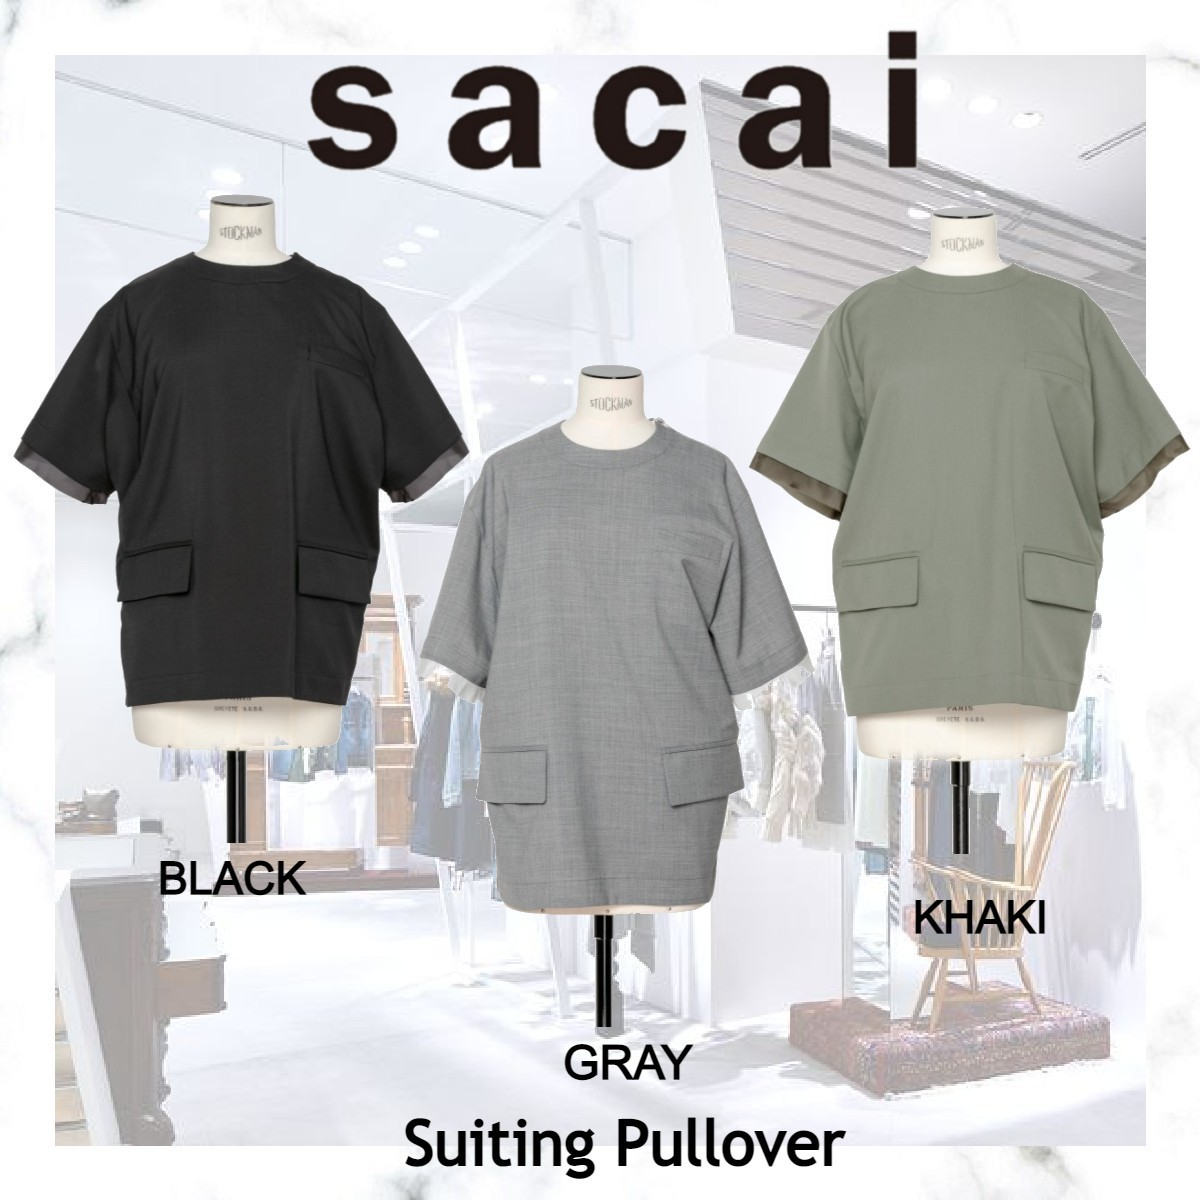 NEW!! 2021ss 【sacai(サカイ)】Suiting Pullover-3color (sacai/Tシャツ・カットソー) 21-05528